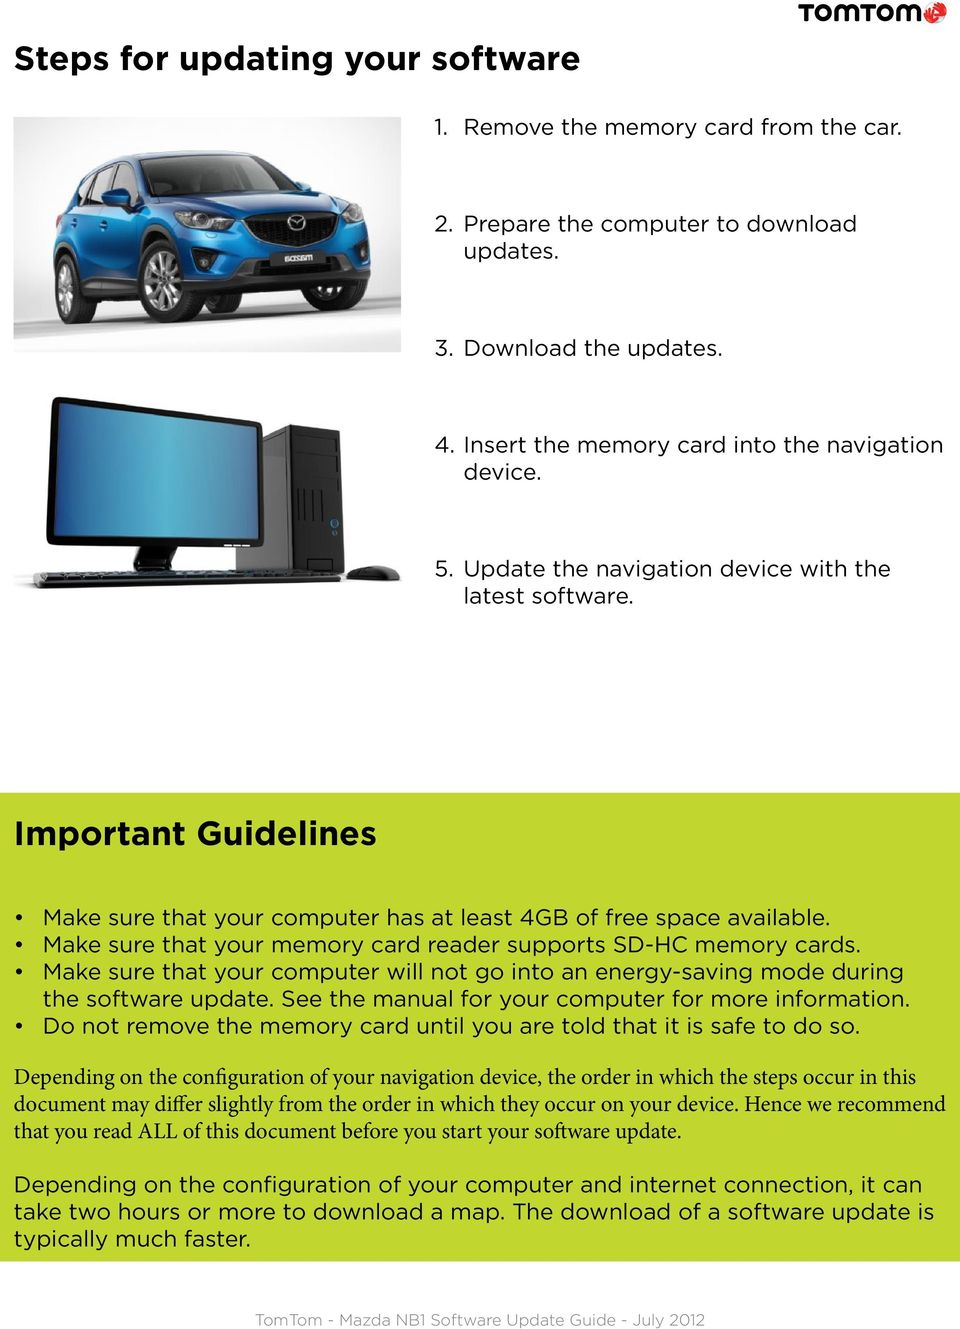 Instructions for updating the software on your Mazda NB1 navigation